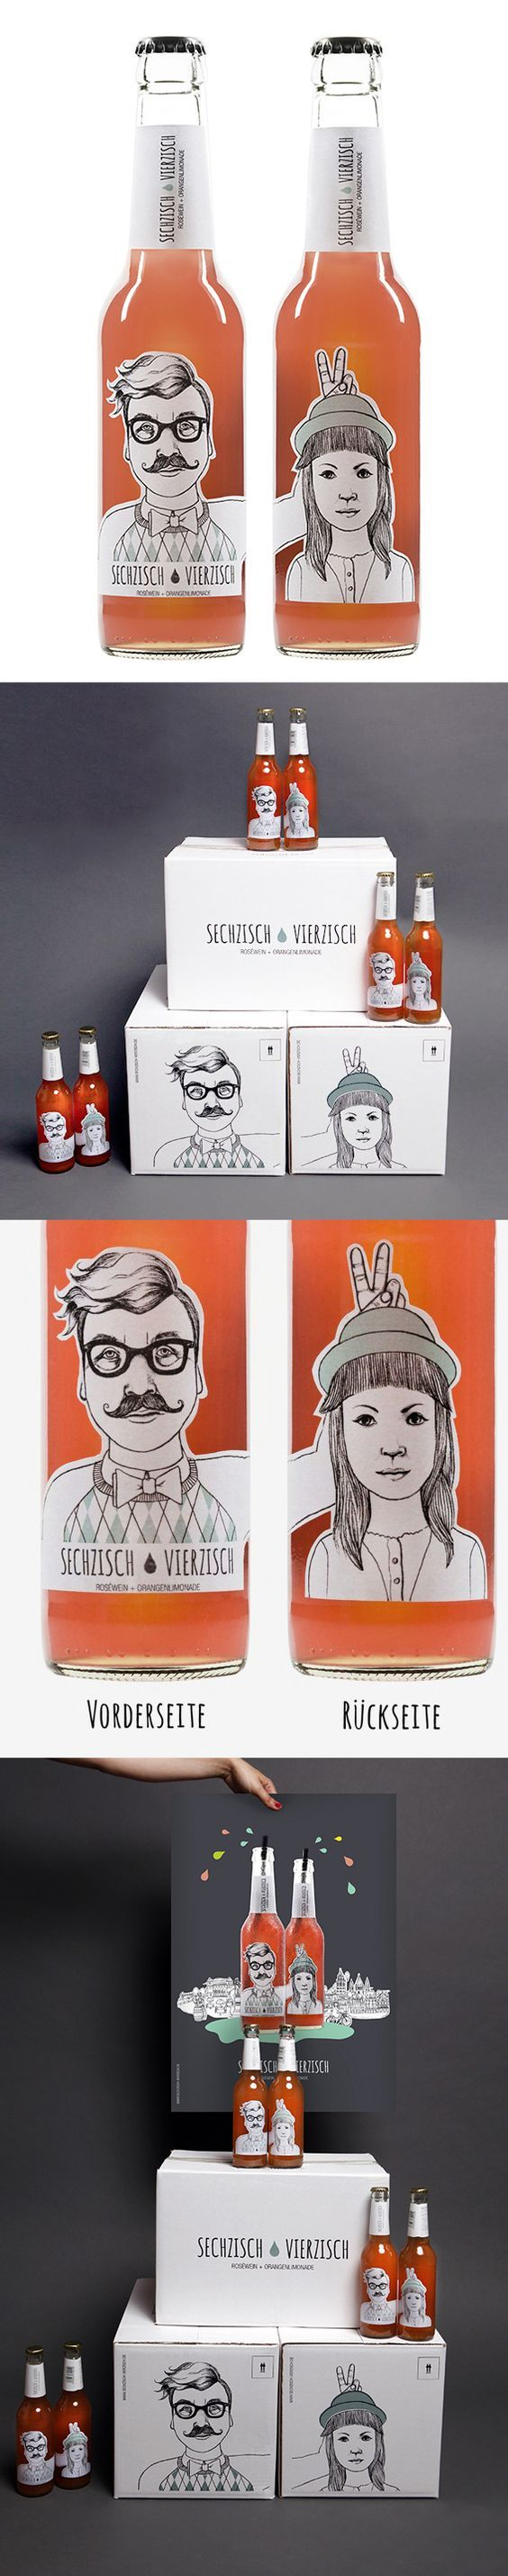 This #creative packaging #design and bottle #labels stand out in a sea of seamness. Get inspired by these gorgeous #illustrations.